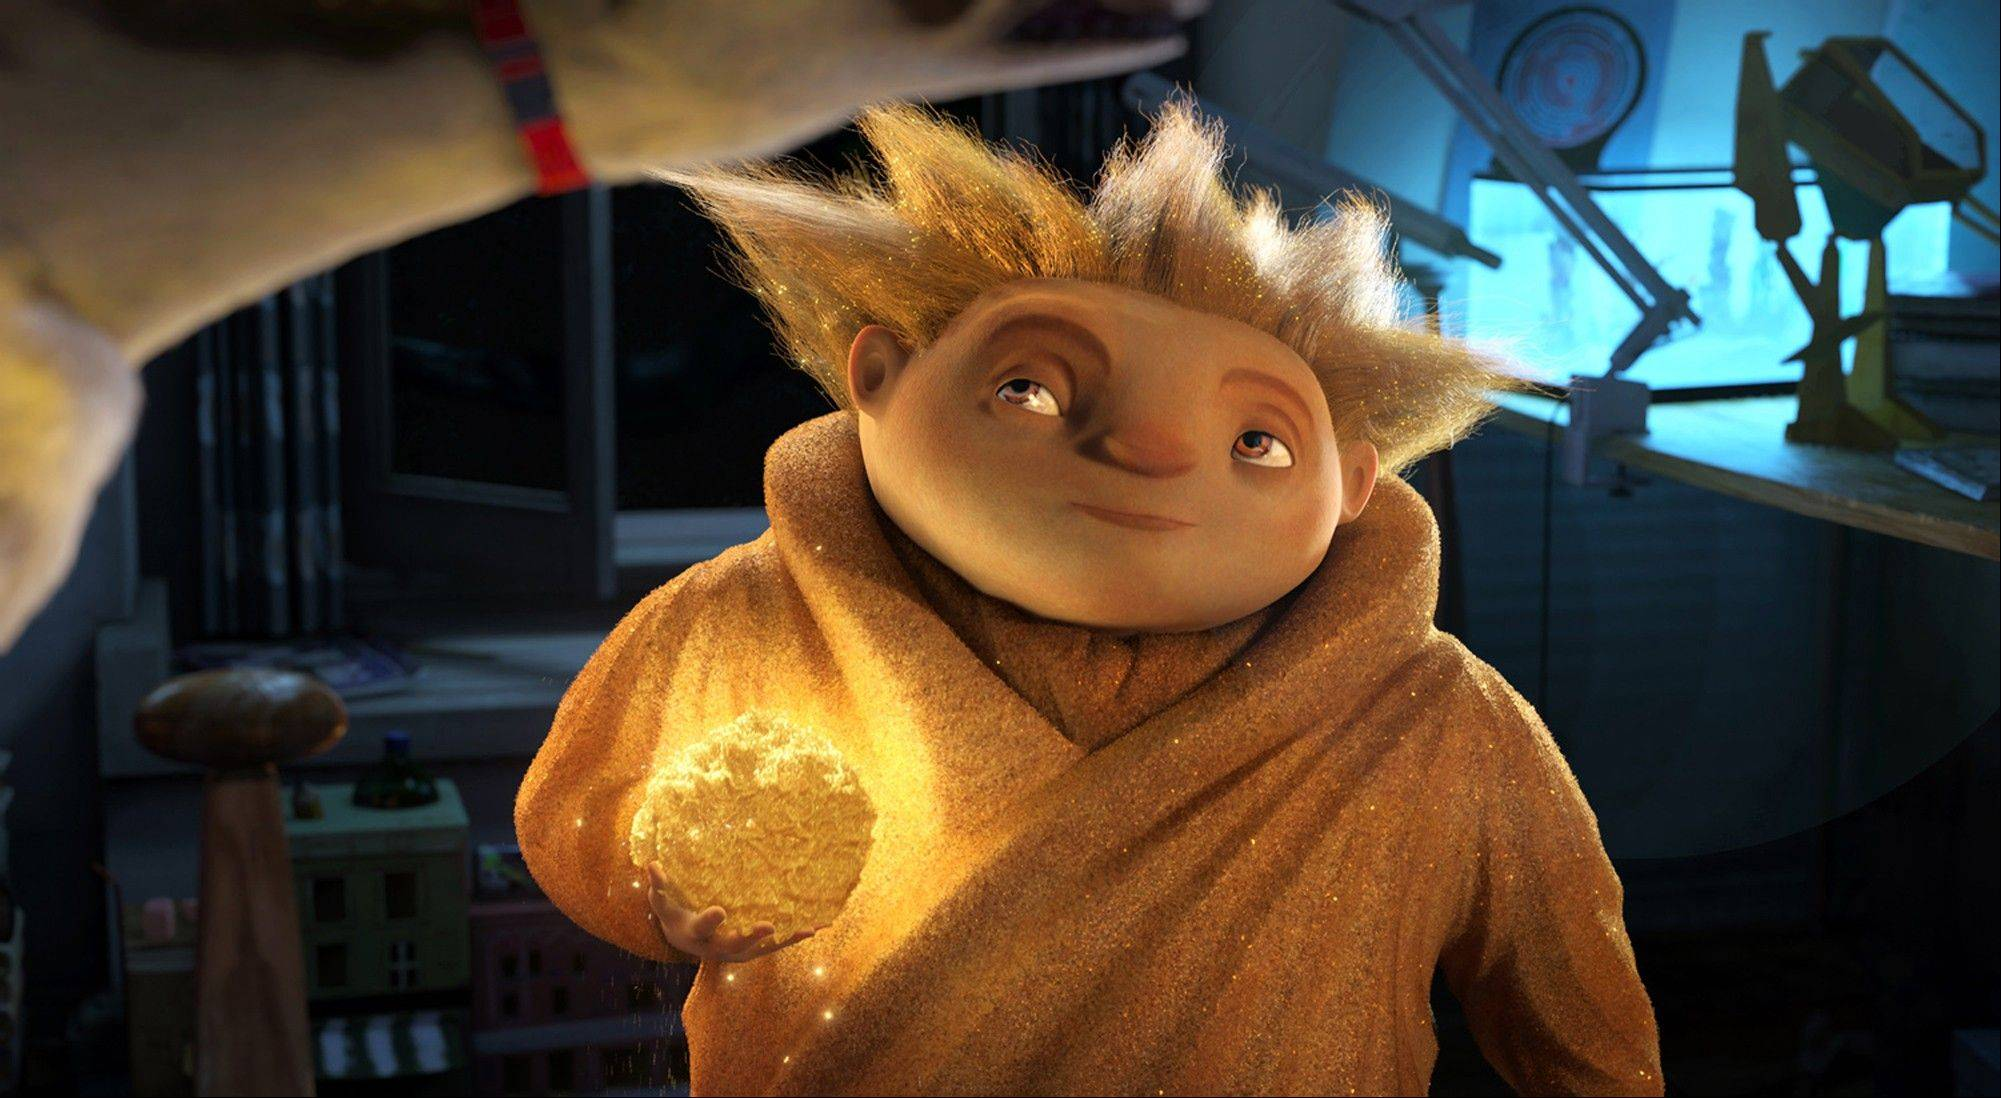 "Sandman eyes his target in DreamWorks Animation's ""Rise of the Guardians."" The film, releasing by Paramount Pictures, centers on a carefree Jack Frost (voiced by Chris Pine) joining an Avengers-style team of mythical figures who work together to protect the world's children with their assortment of powers and gadgets."